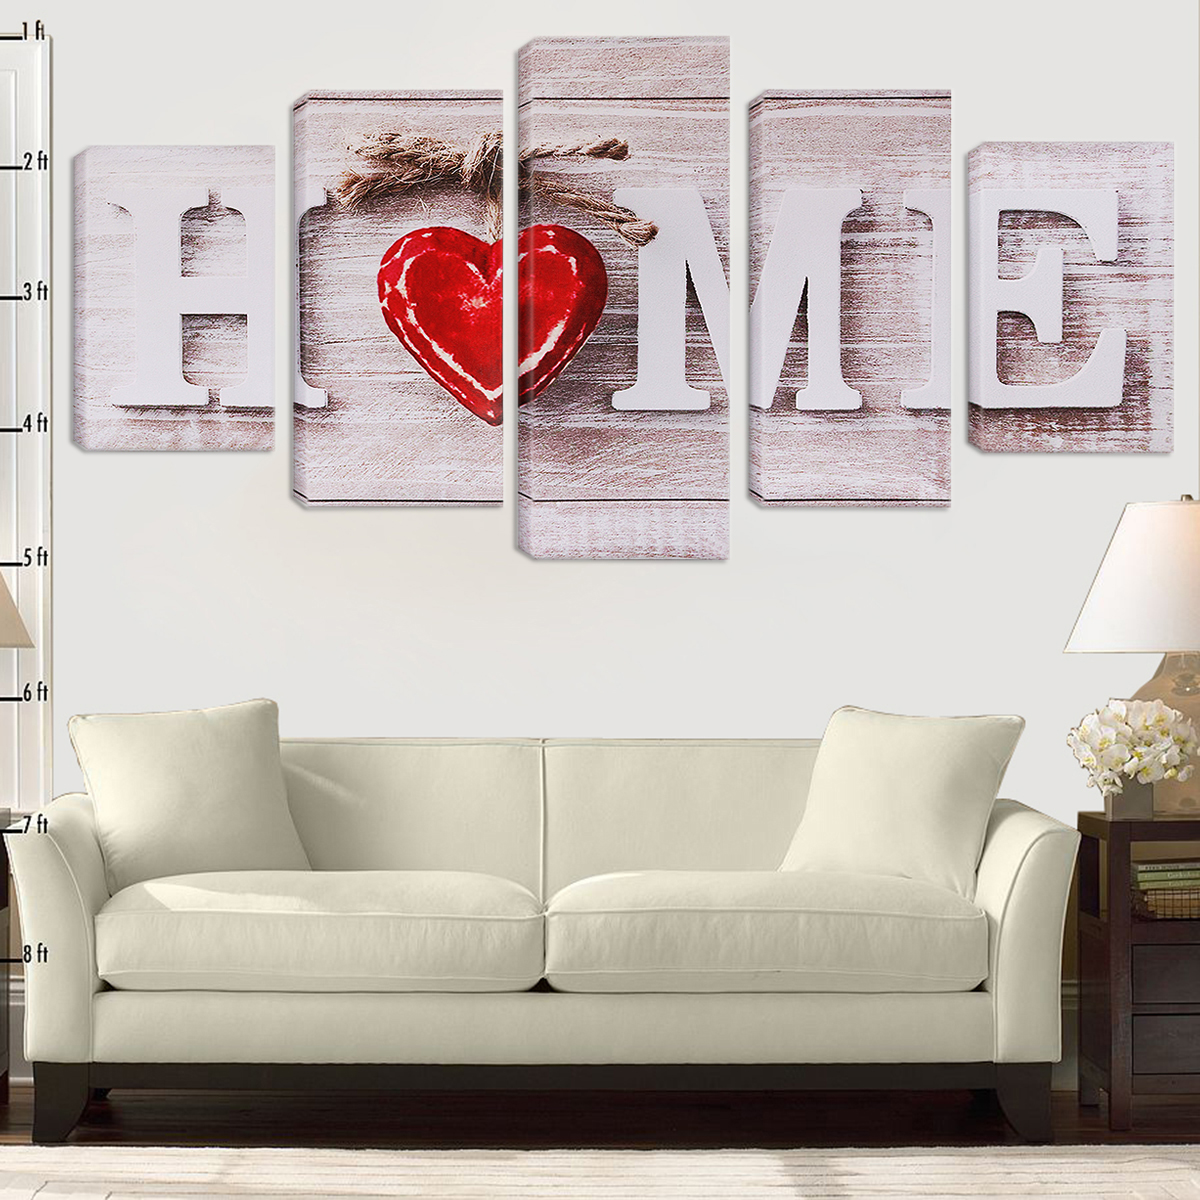 5 Pcs Unframed Canvas Print Paintings Picture Home Bedroom Wall Art Decor Gifts